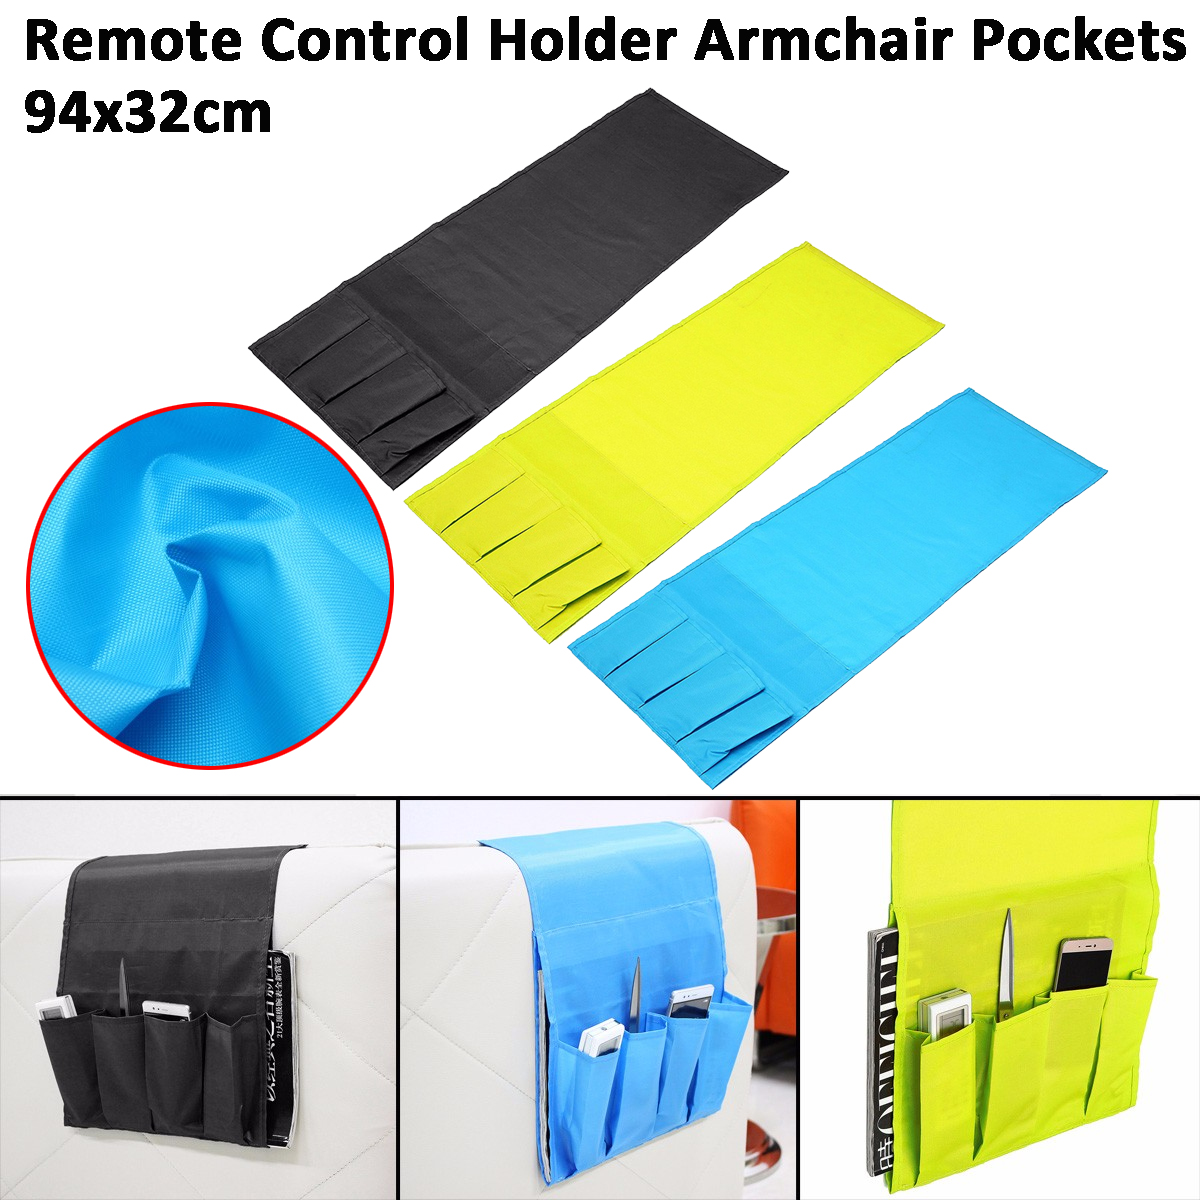 Foldable Remote Control Holder Bag Sofa Armrest Armchair Pockets Organizer Multi-function Storage Bag For Home Storage,Blue,Green,Black